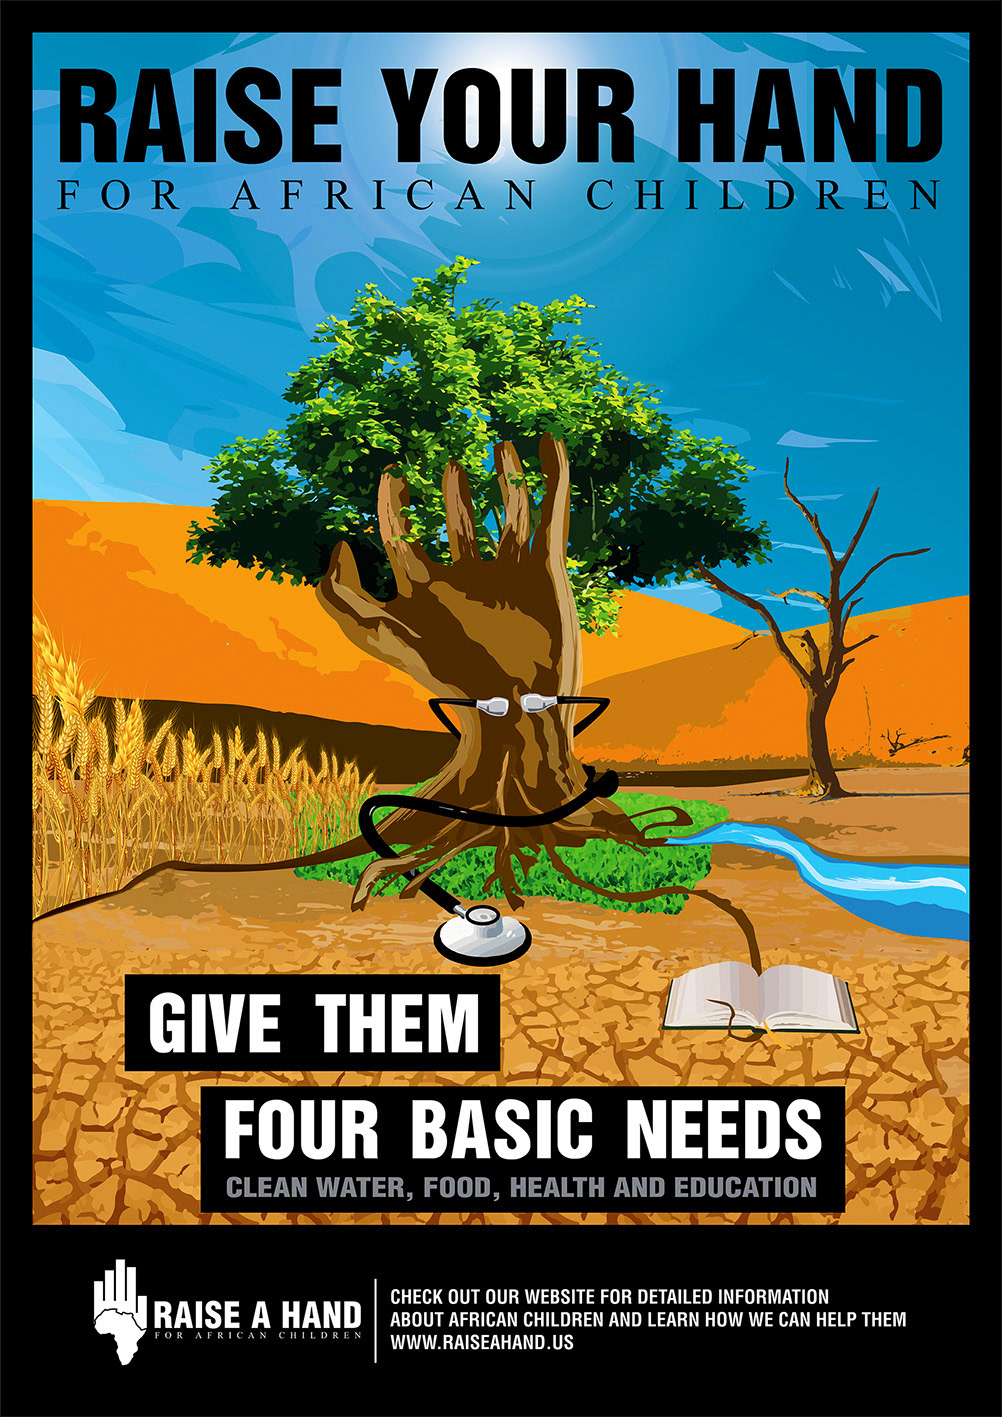 social responsibility African Children donation poster Web Design  campaign charity